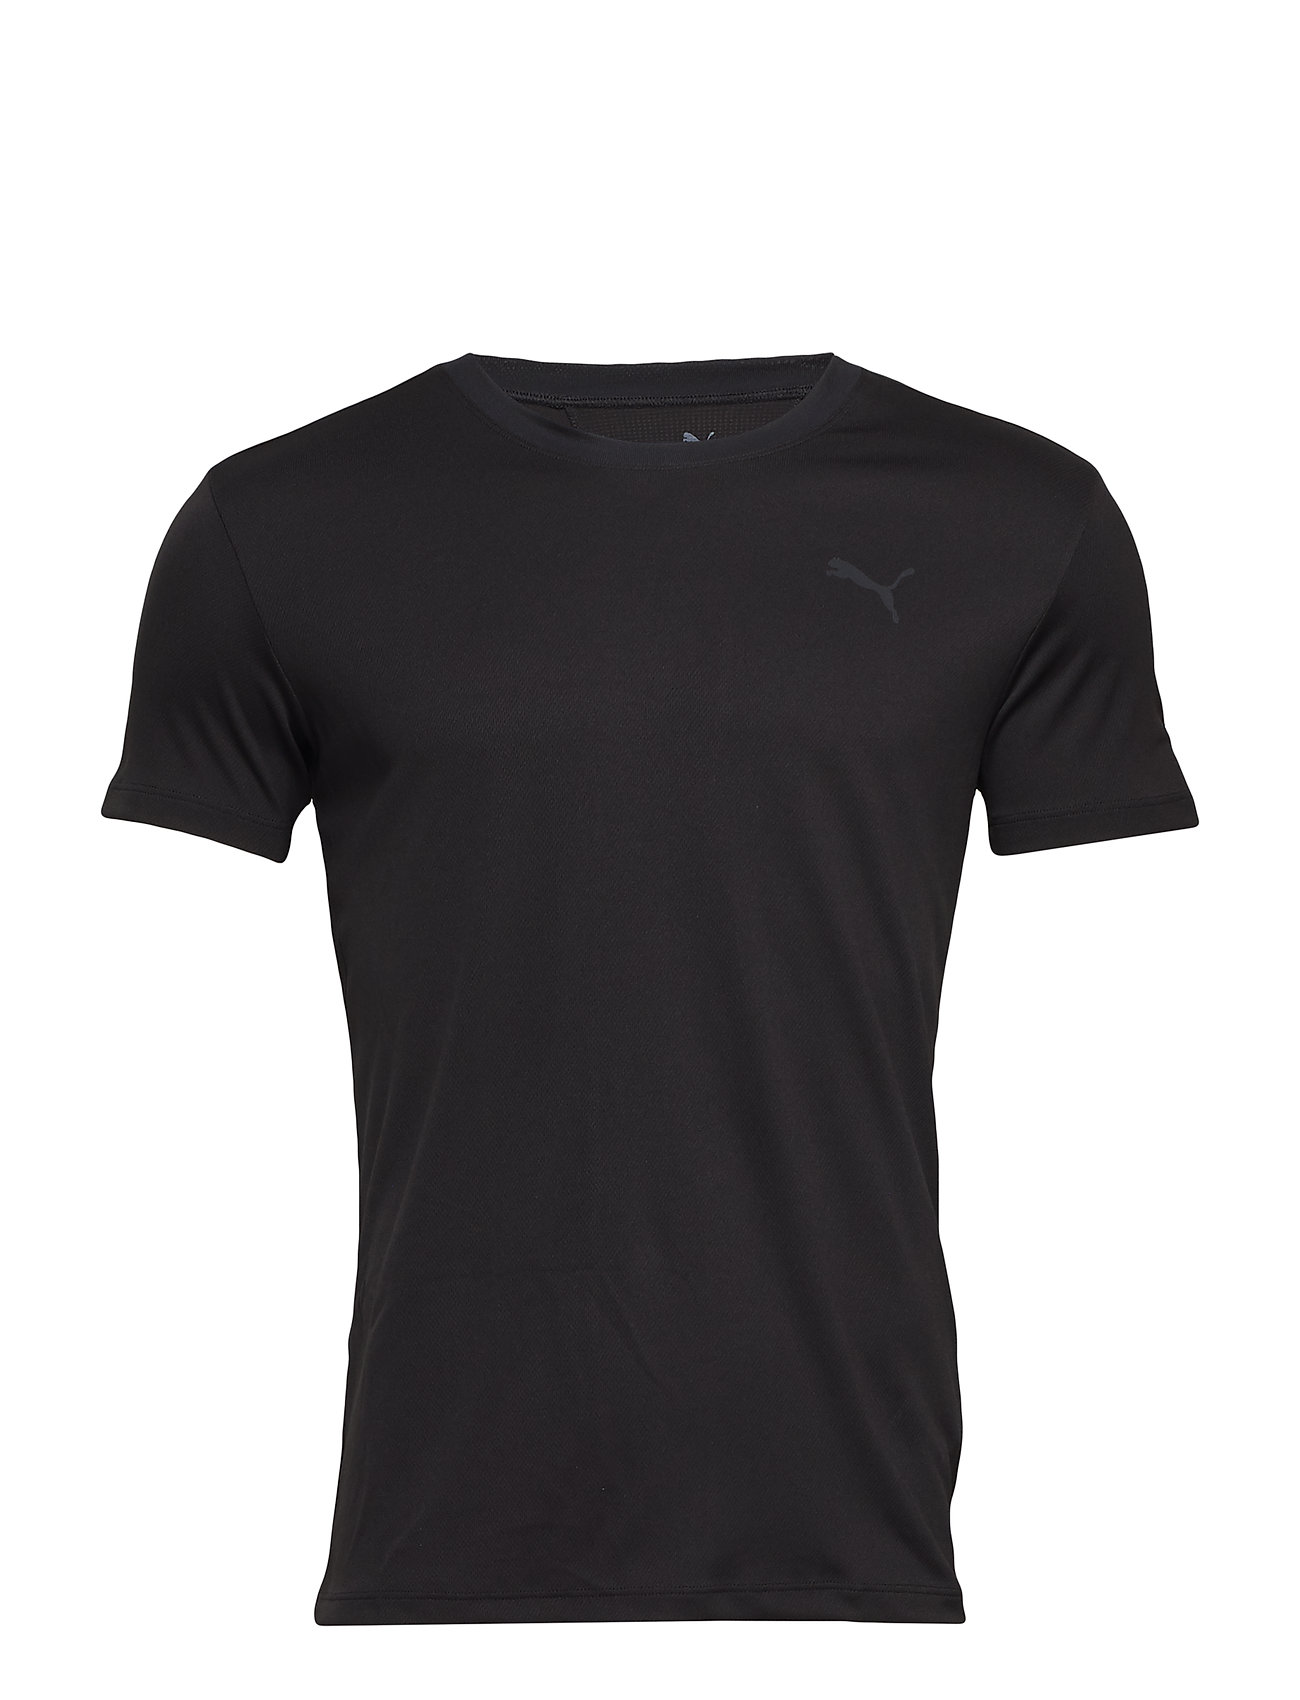 PUMA PUMA ACTIVE CREE TEE 1P PACKED - BLACK